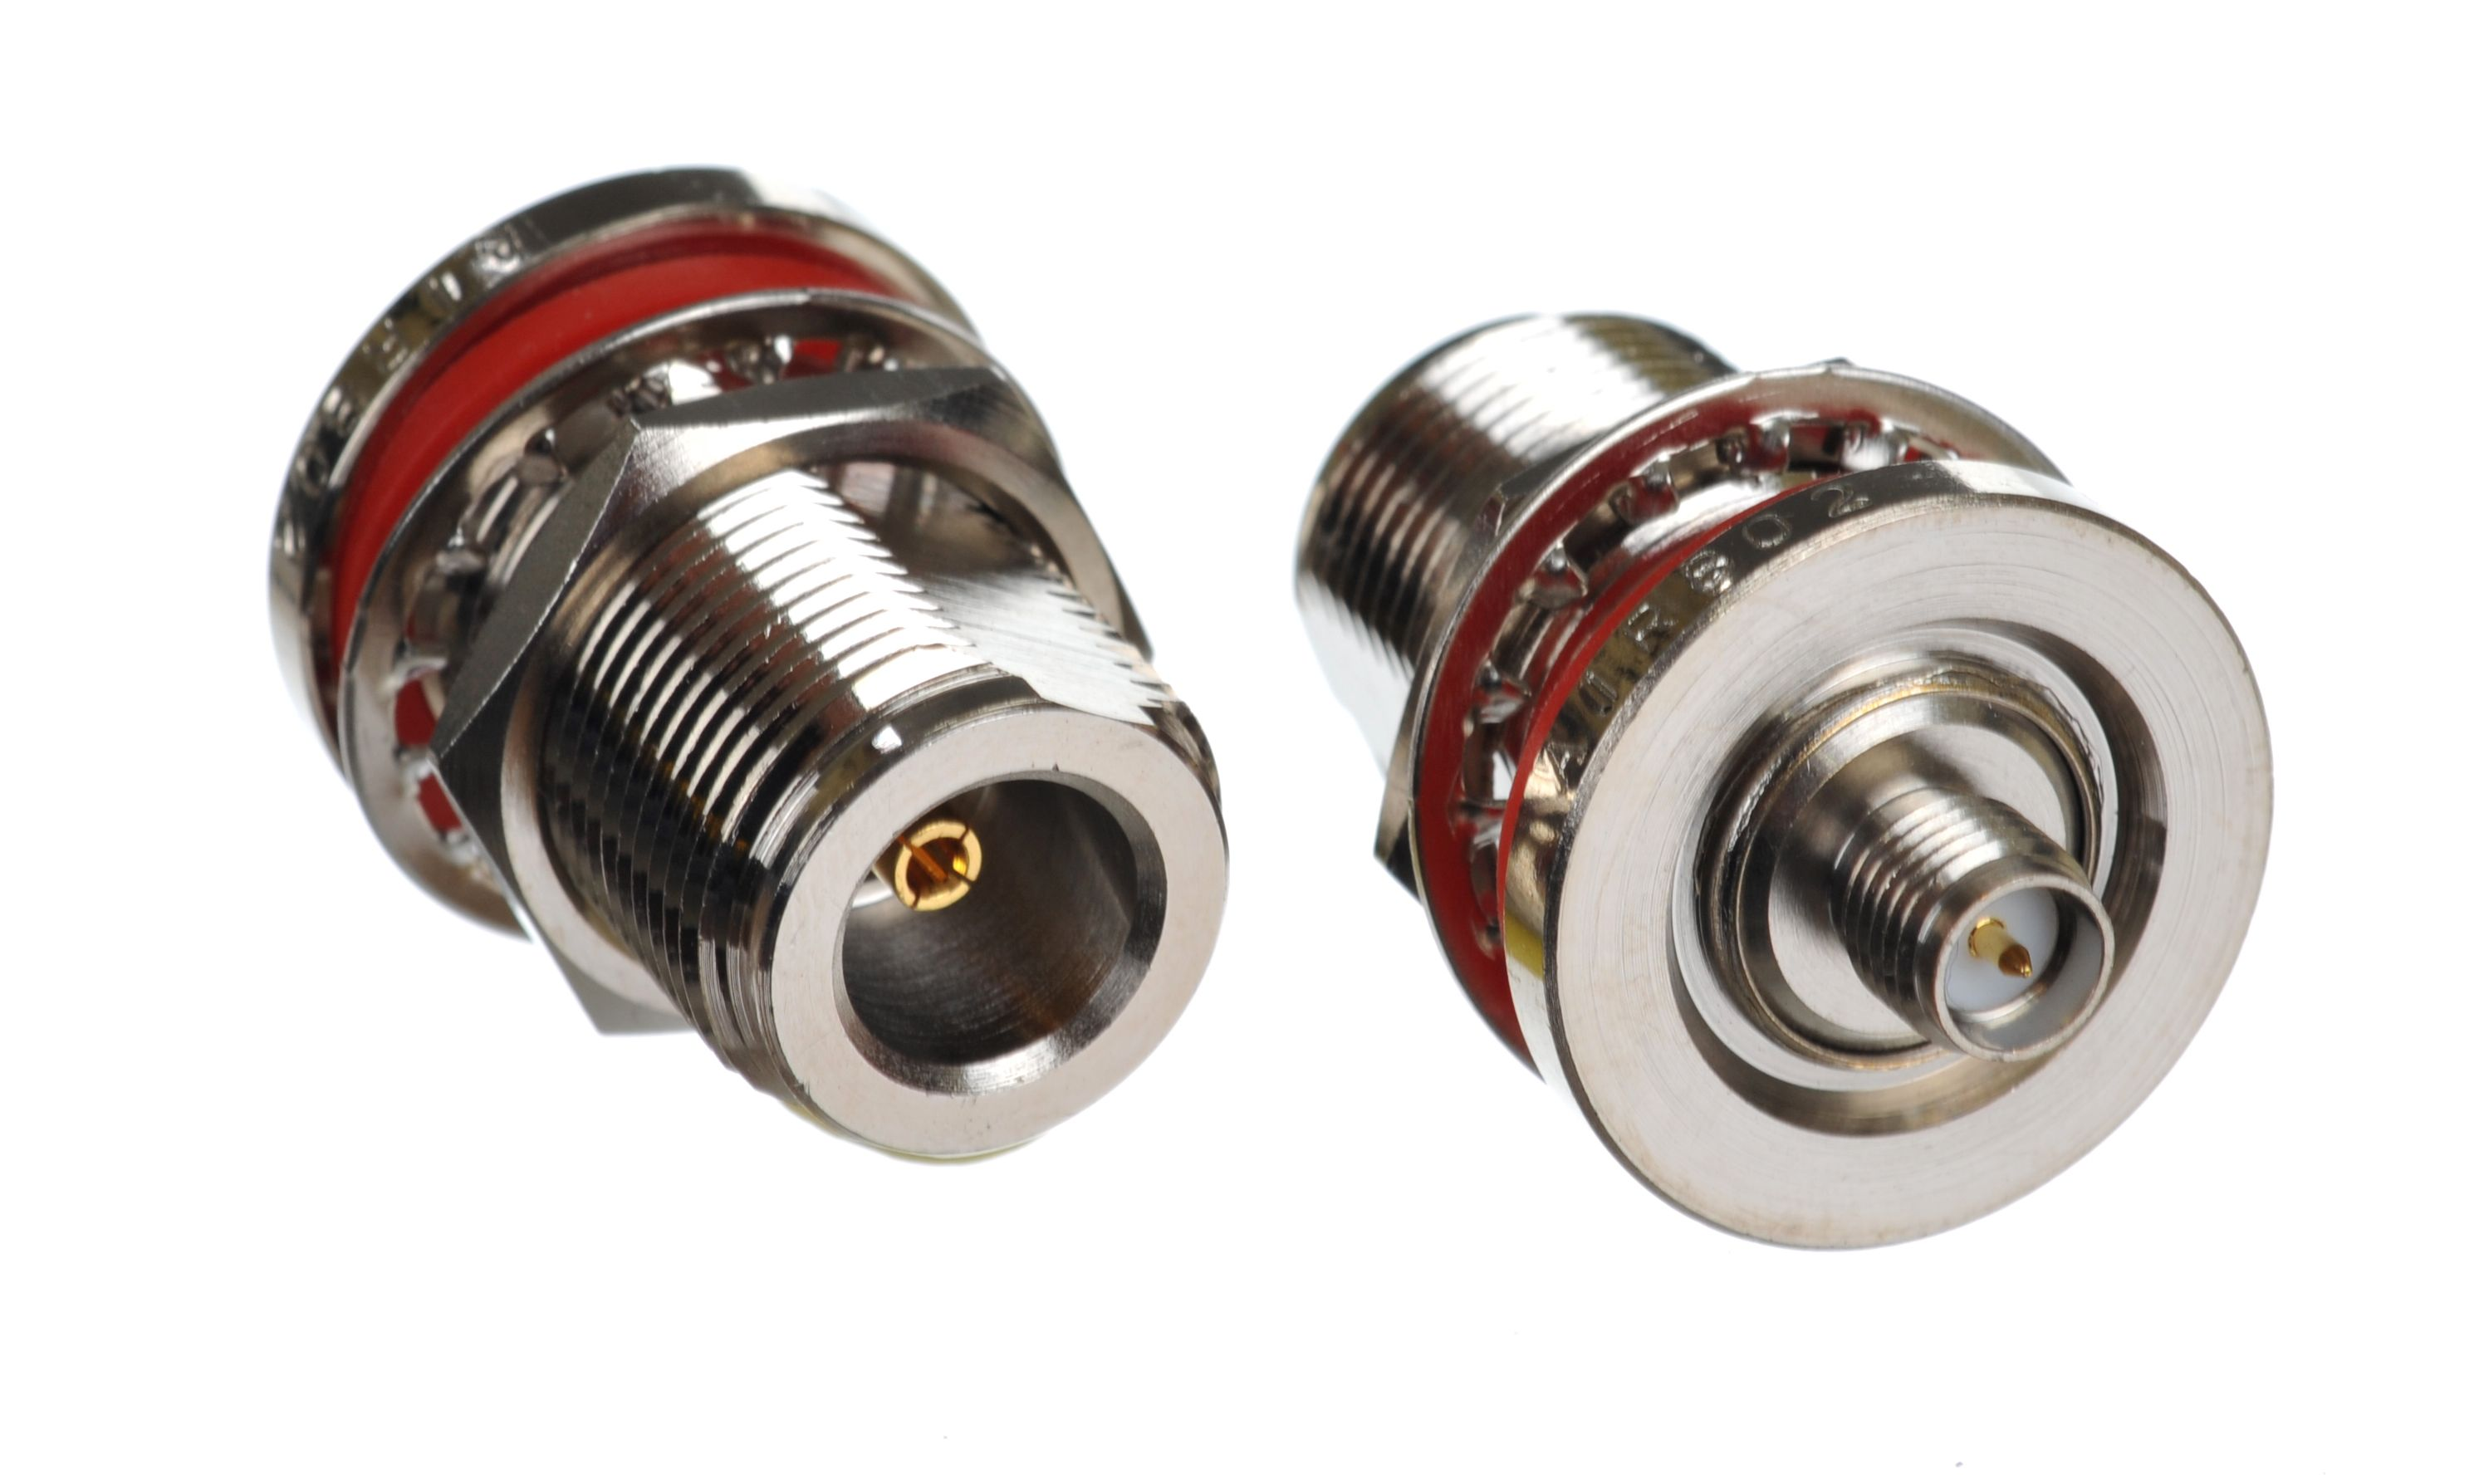 Coaxial inter-series adapter with the left-side showing the N jack-female bulkhead and the right side the RP-SMA jack-female connector.